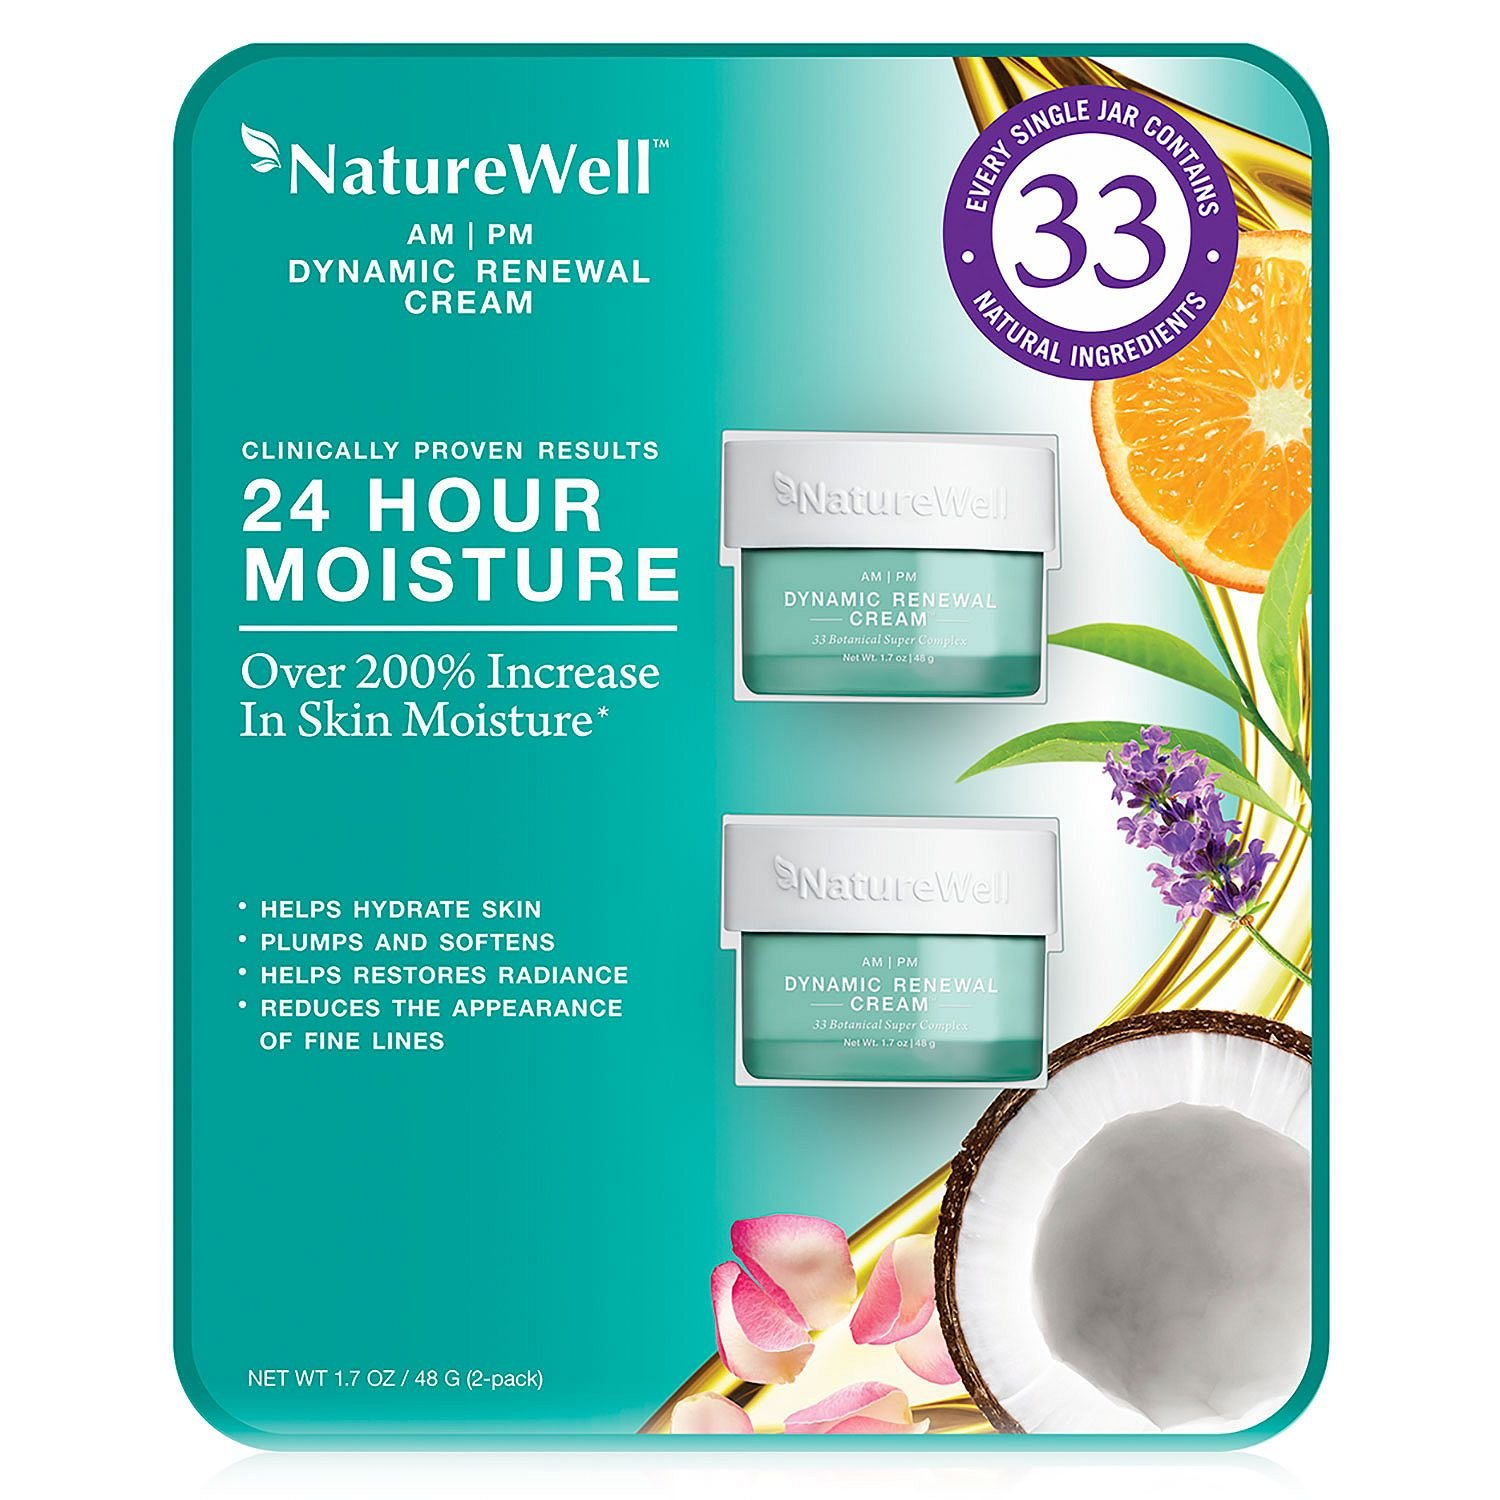 Nature Well Dynamic Renewal Cream (1.7 oz, 2 pk.) (pack of 6)